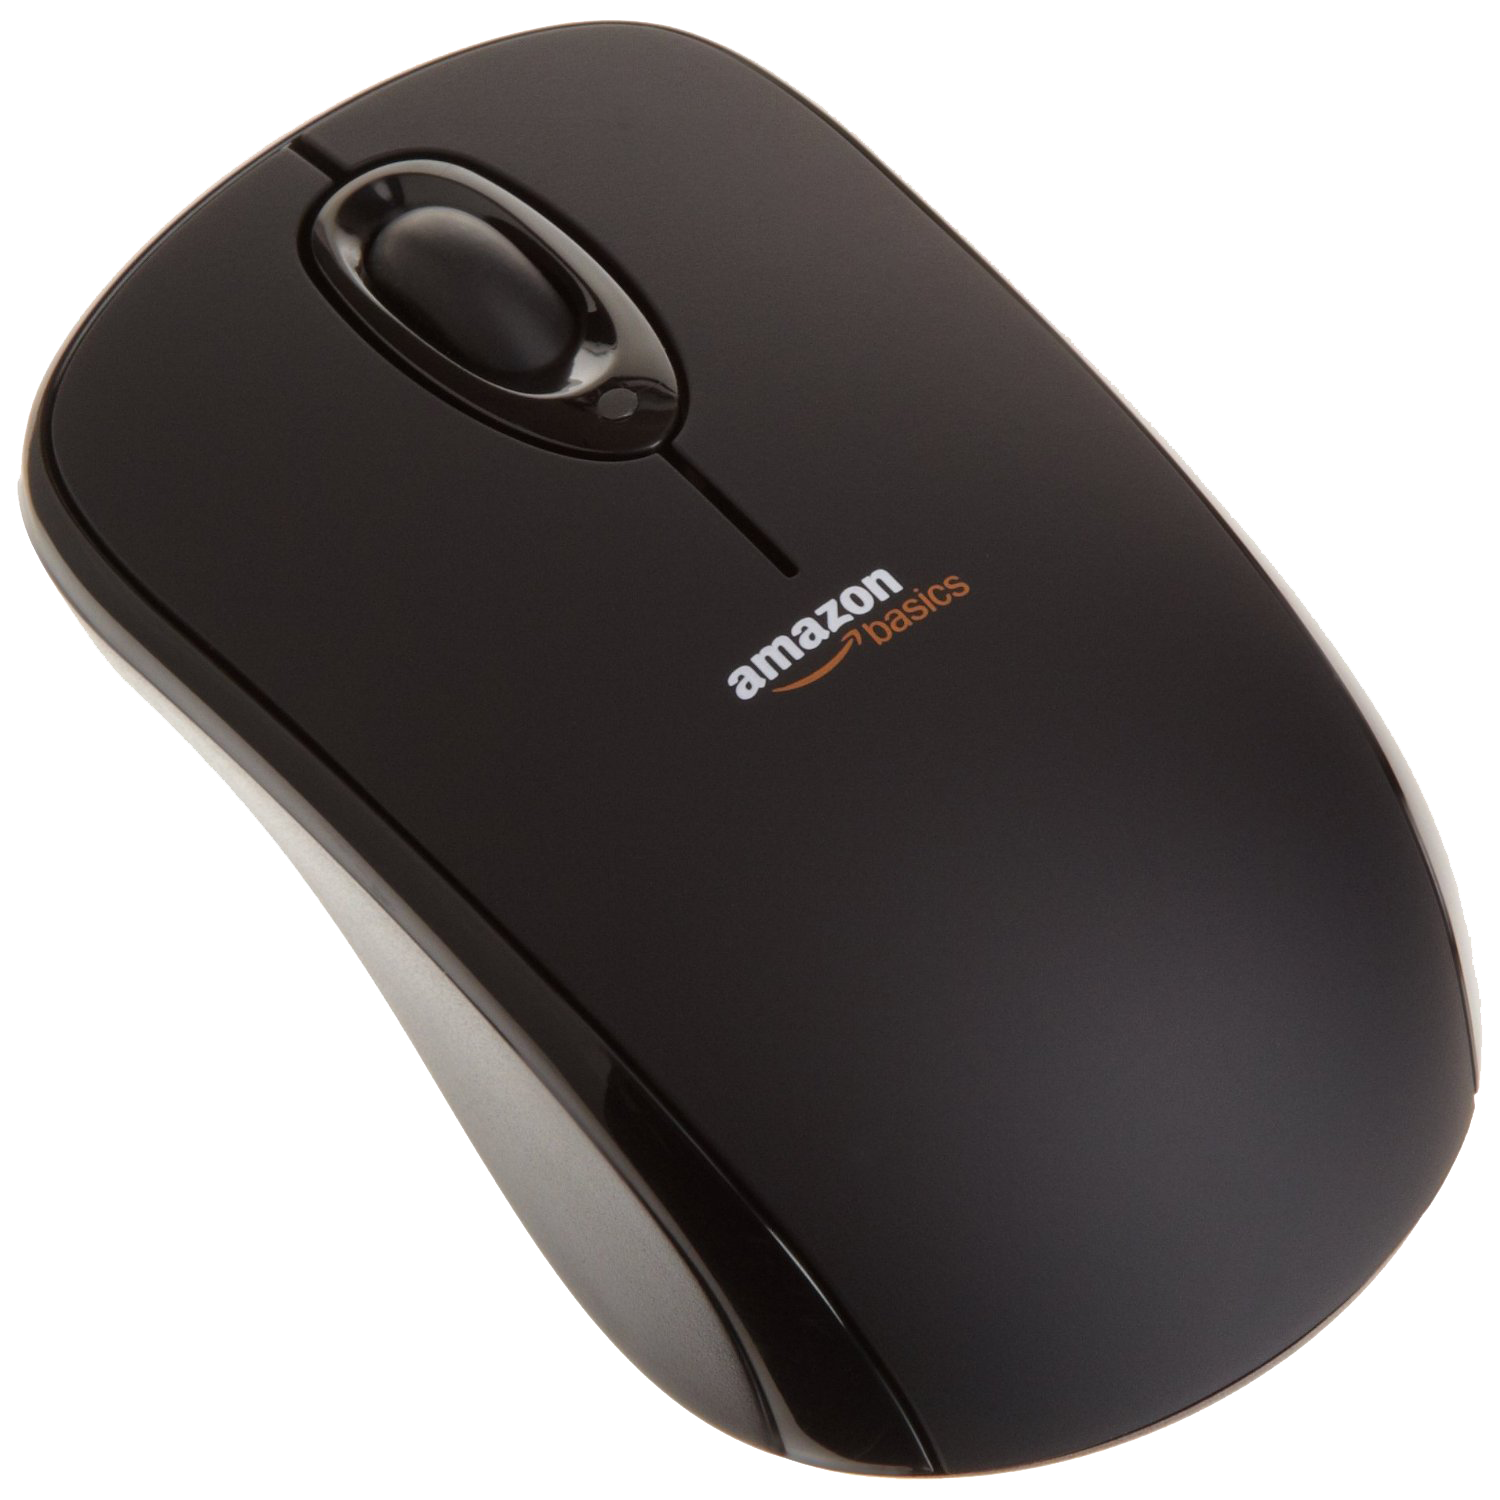 Mouse png. Computer images transparent free